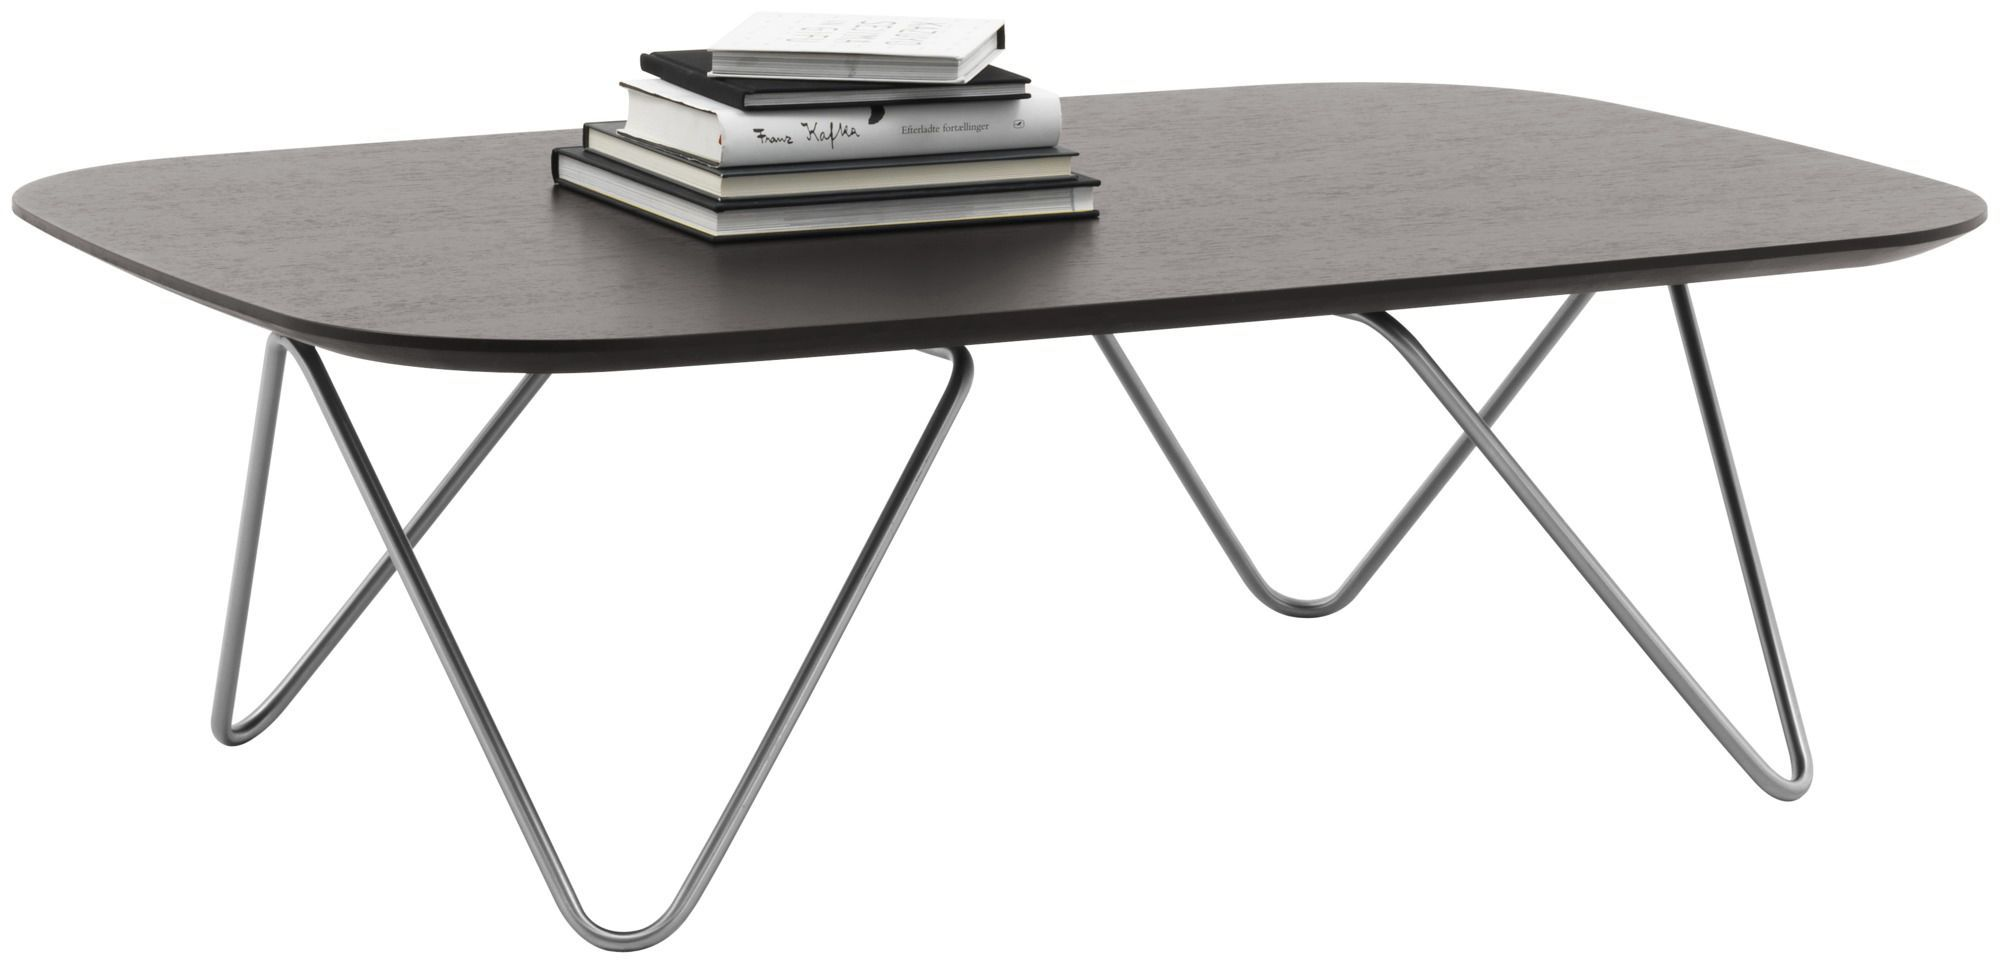 Contemporary Coffee Table Murcia Boconcept Marble Mdf Steel